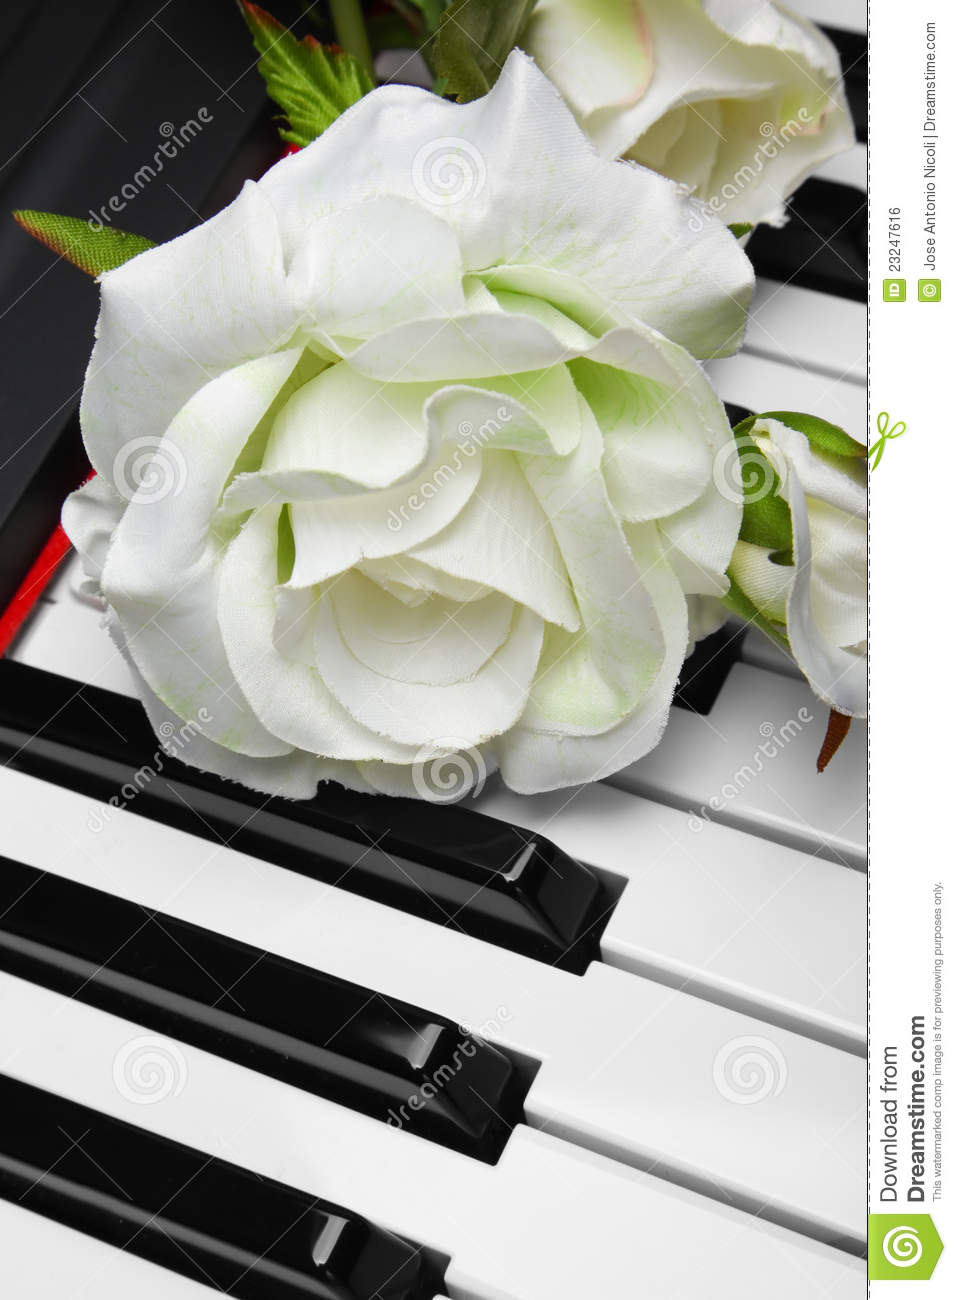 Artificial White Rose On Piano Royalty Free Stock Image ...